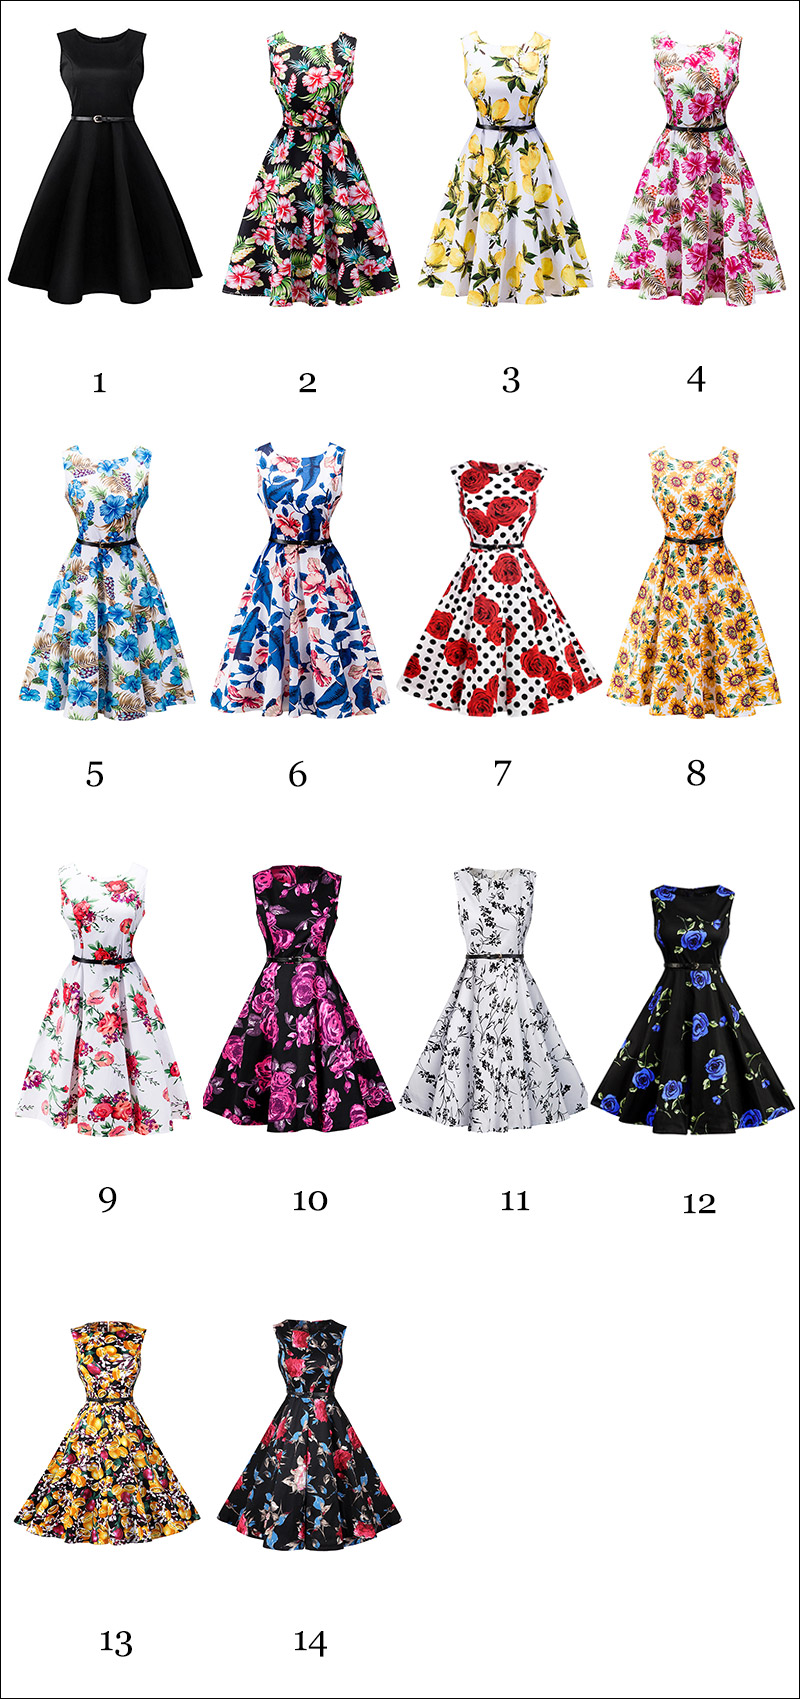 Kostlish-A-Line-Women-Summer-Dress-Audrey-Hepburn-50s-60s-Floral-Print-Vintage-Dress-Women-2017-O-Neck-Party-Dresses-Plus-Size-(123)